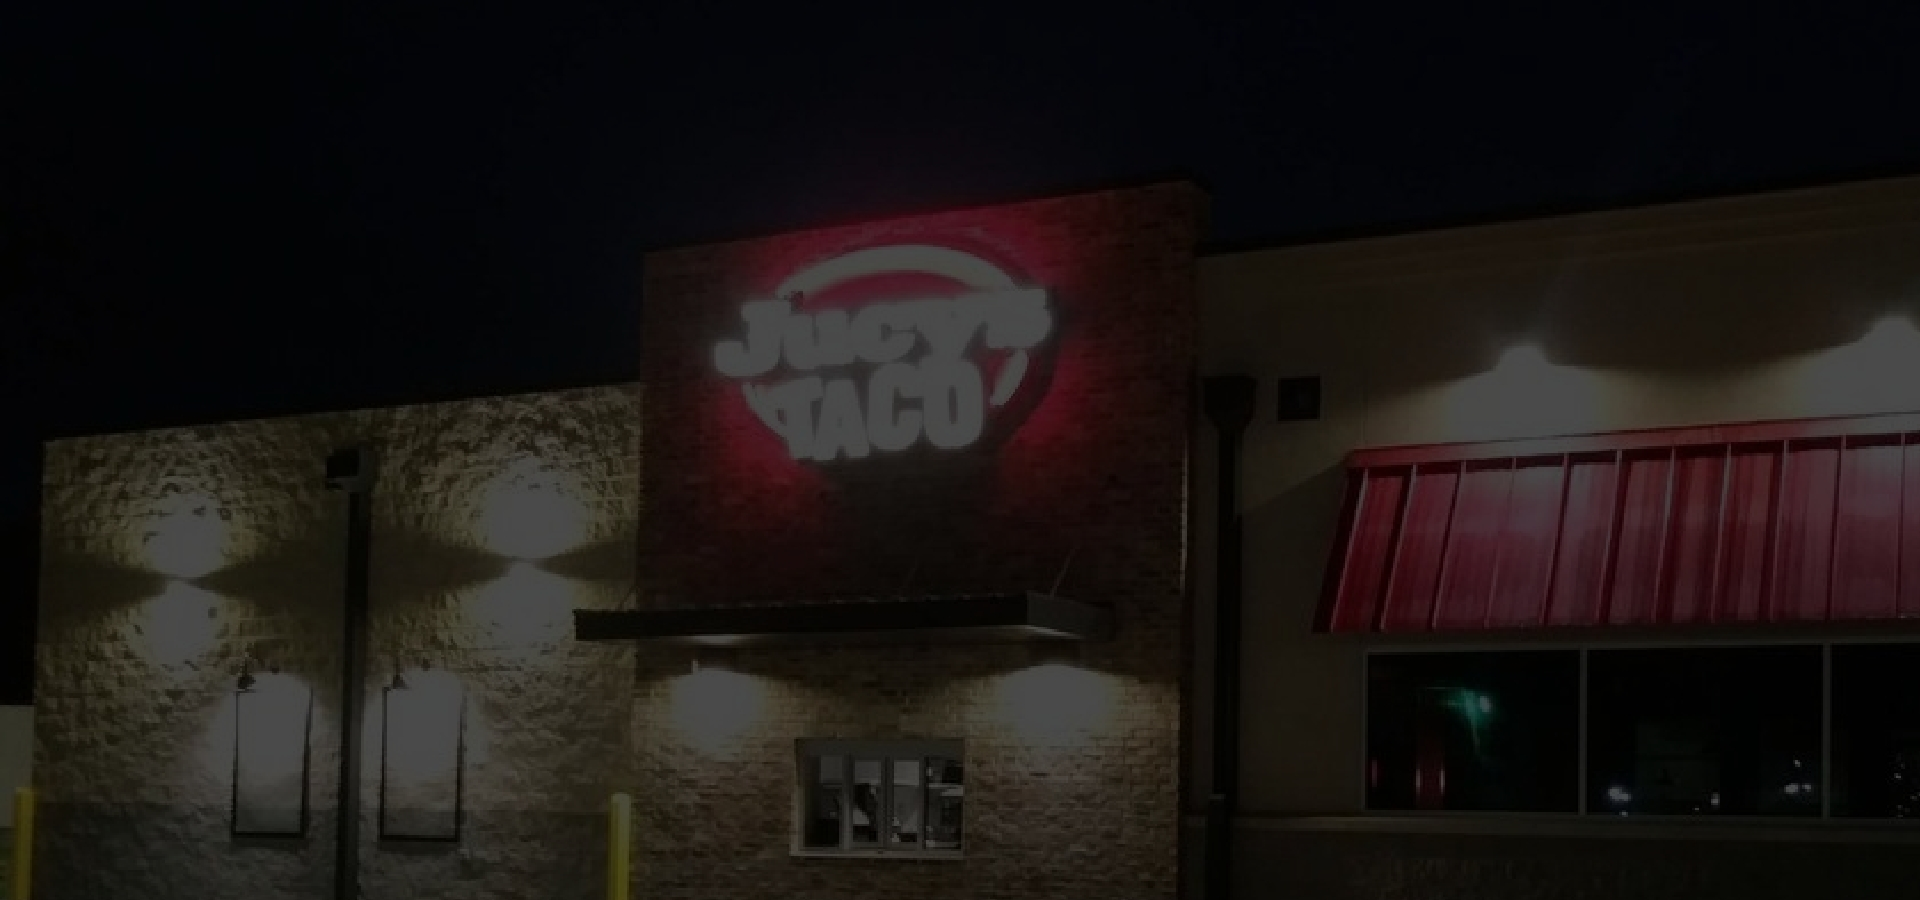 Wildts Wiring has worked with Jucys Taco!